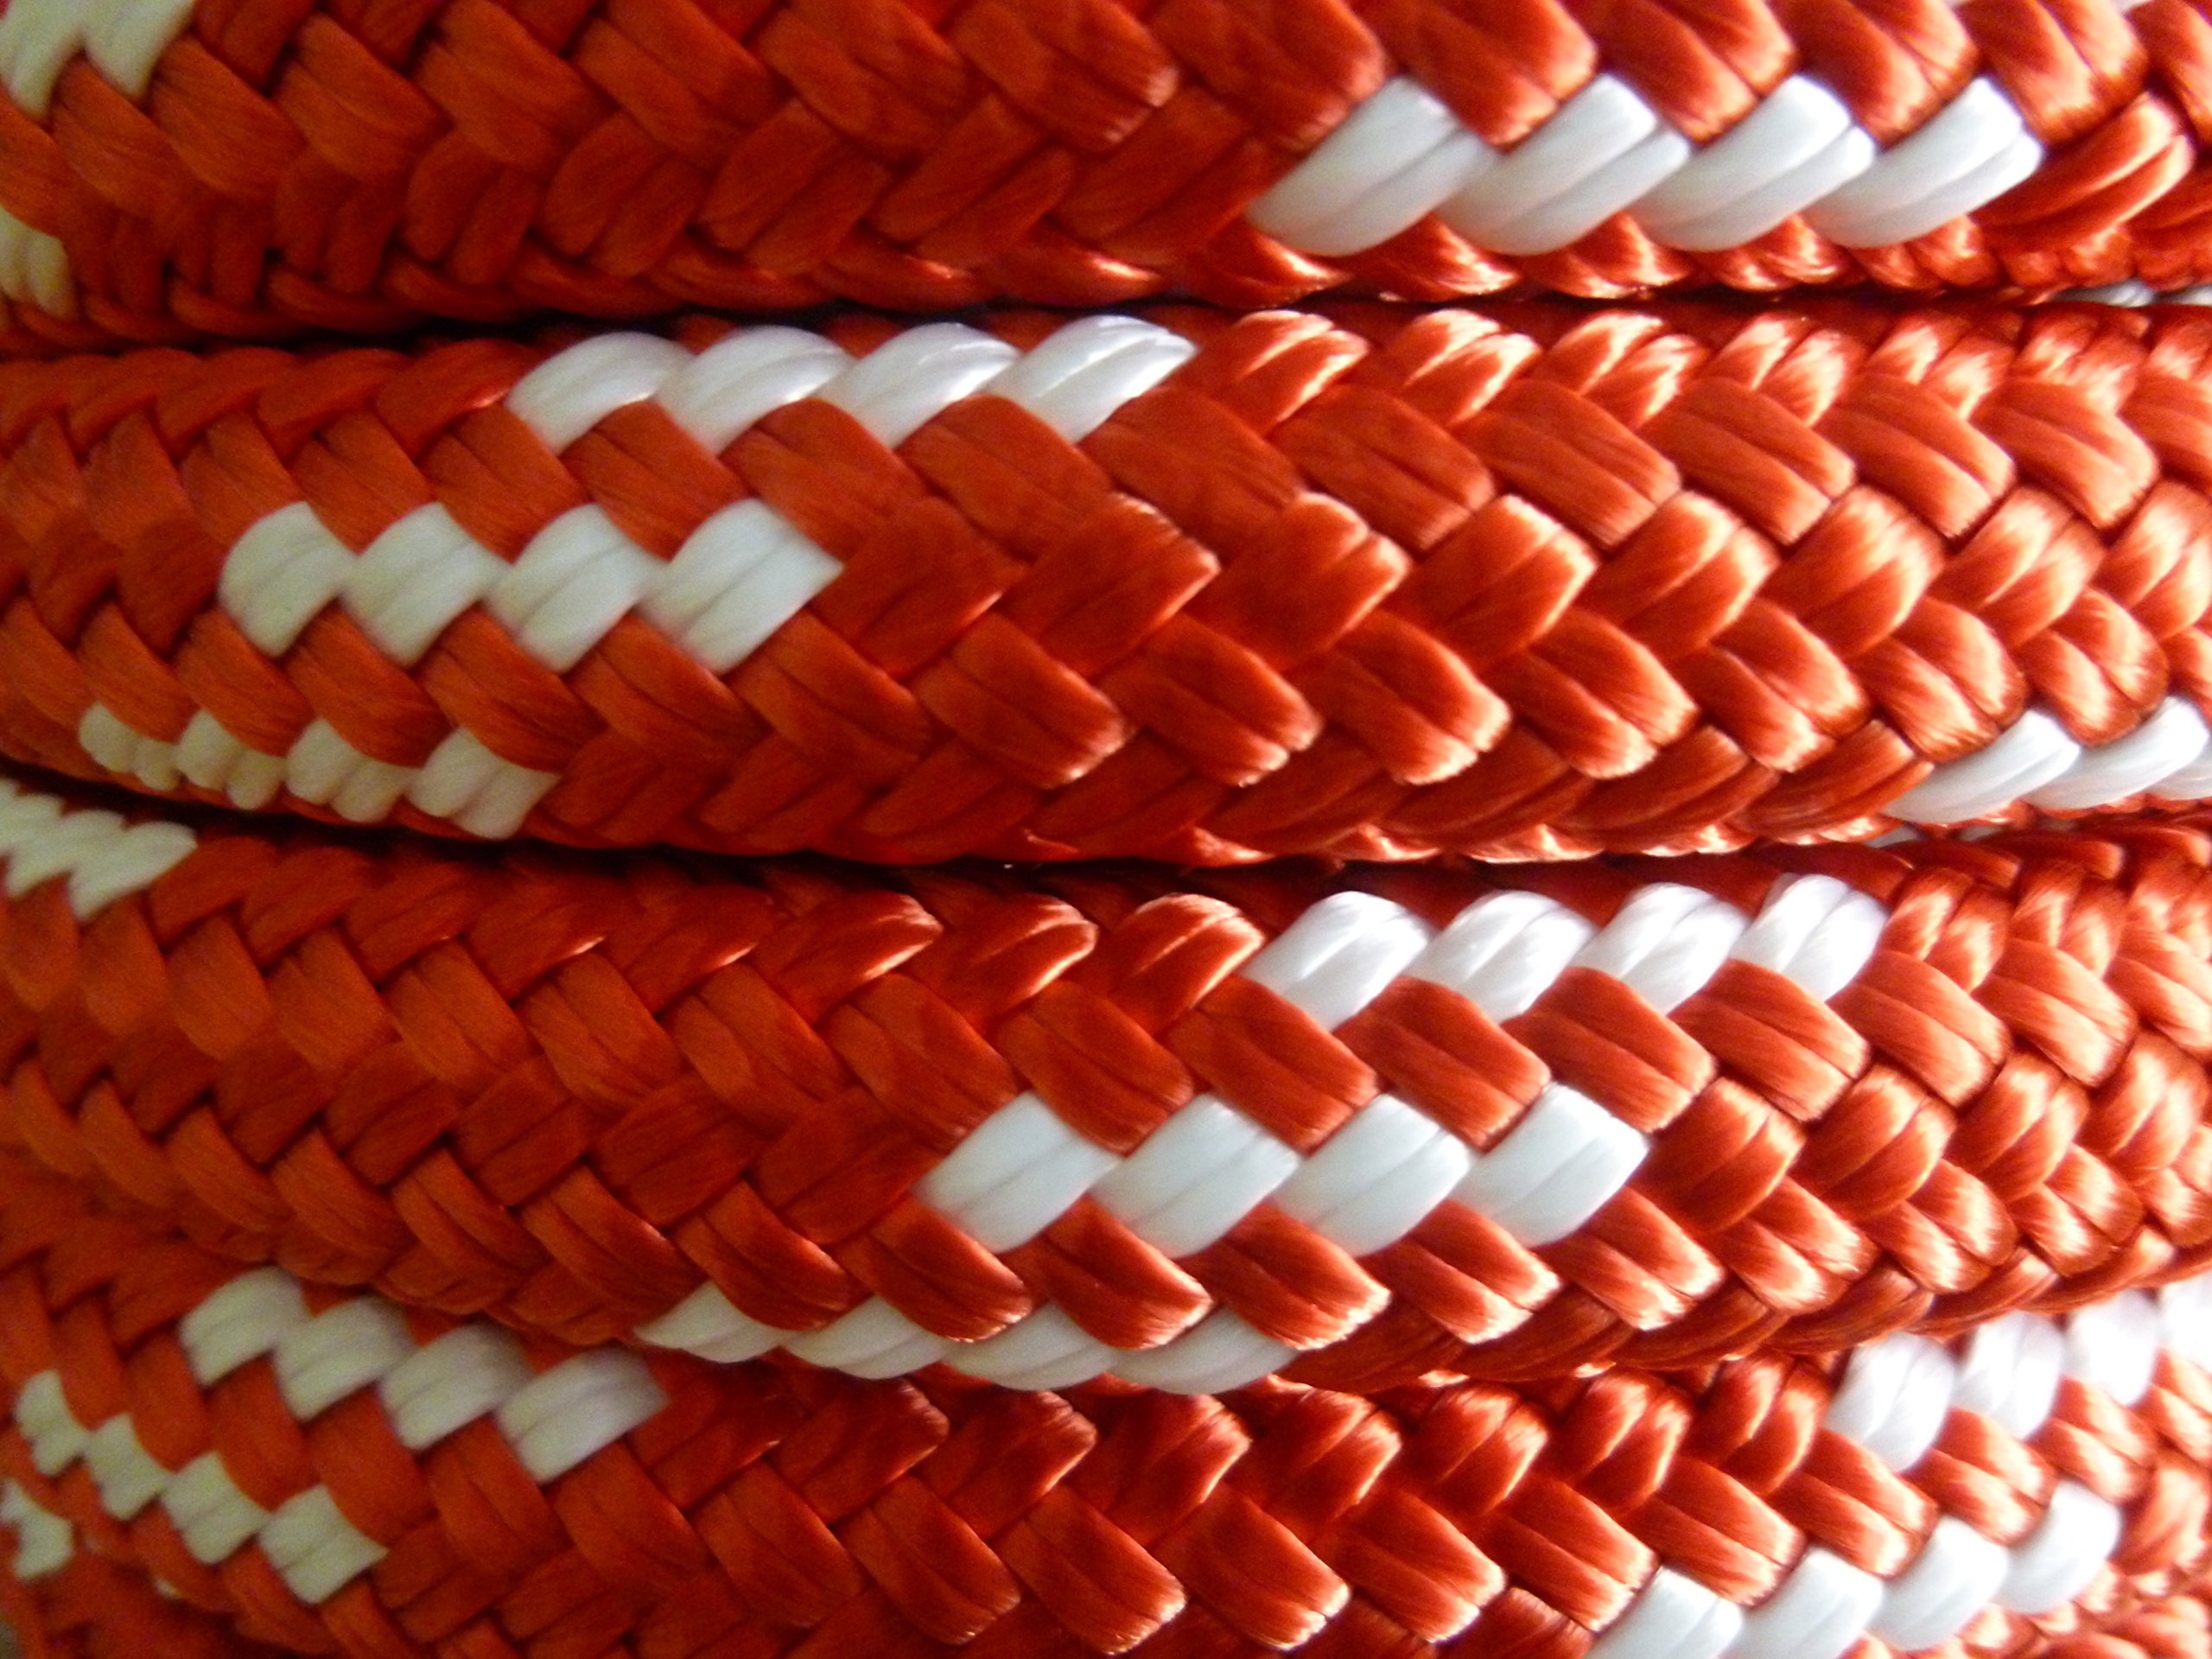 5/8'' x 100 ft. Double Braid Yacht Braid Polyester Sailboat Rigging Nautical Rope Spool. Valley Rope.